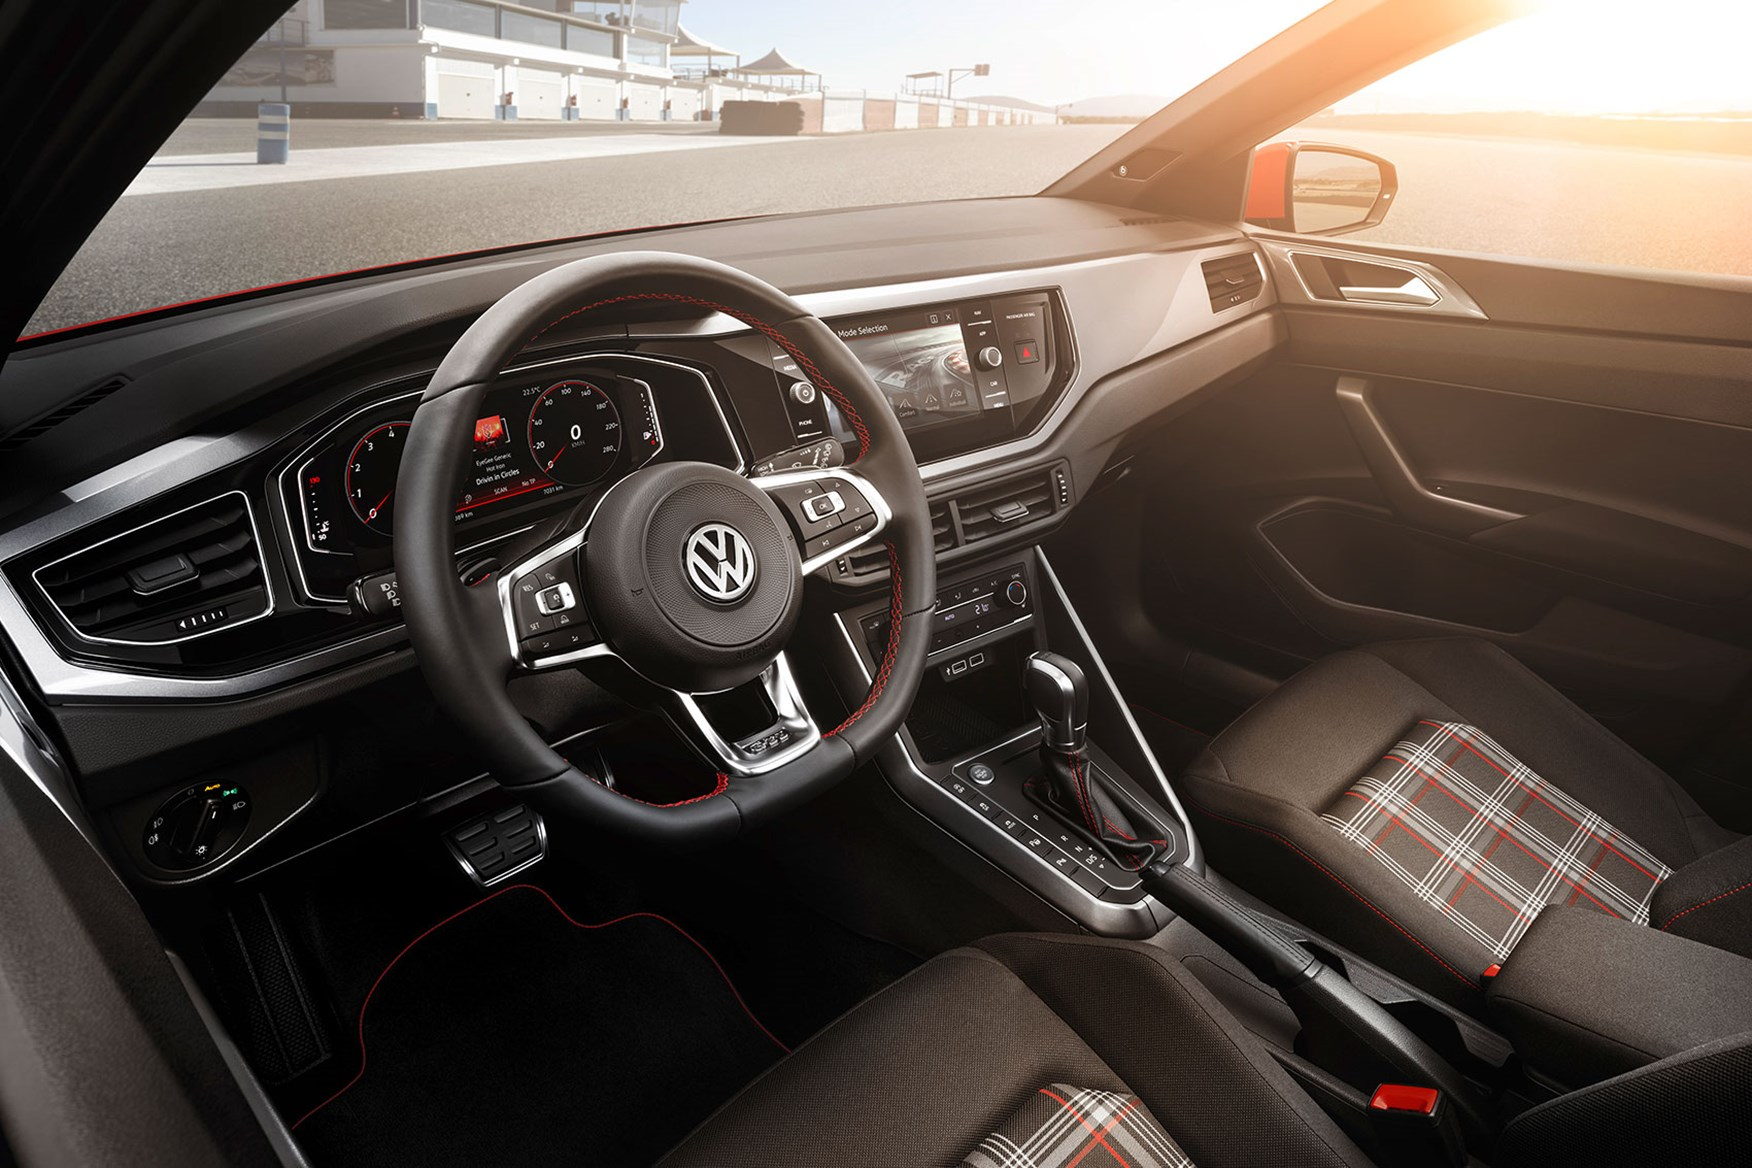 vw-polo-2018-05.jpg?mode=max&quality=90&